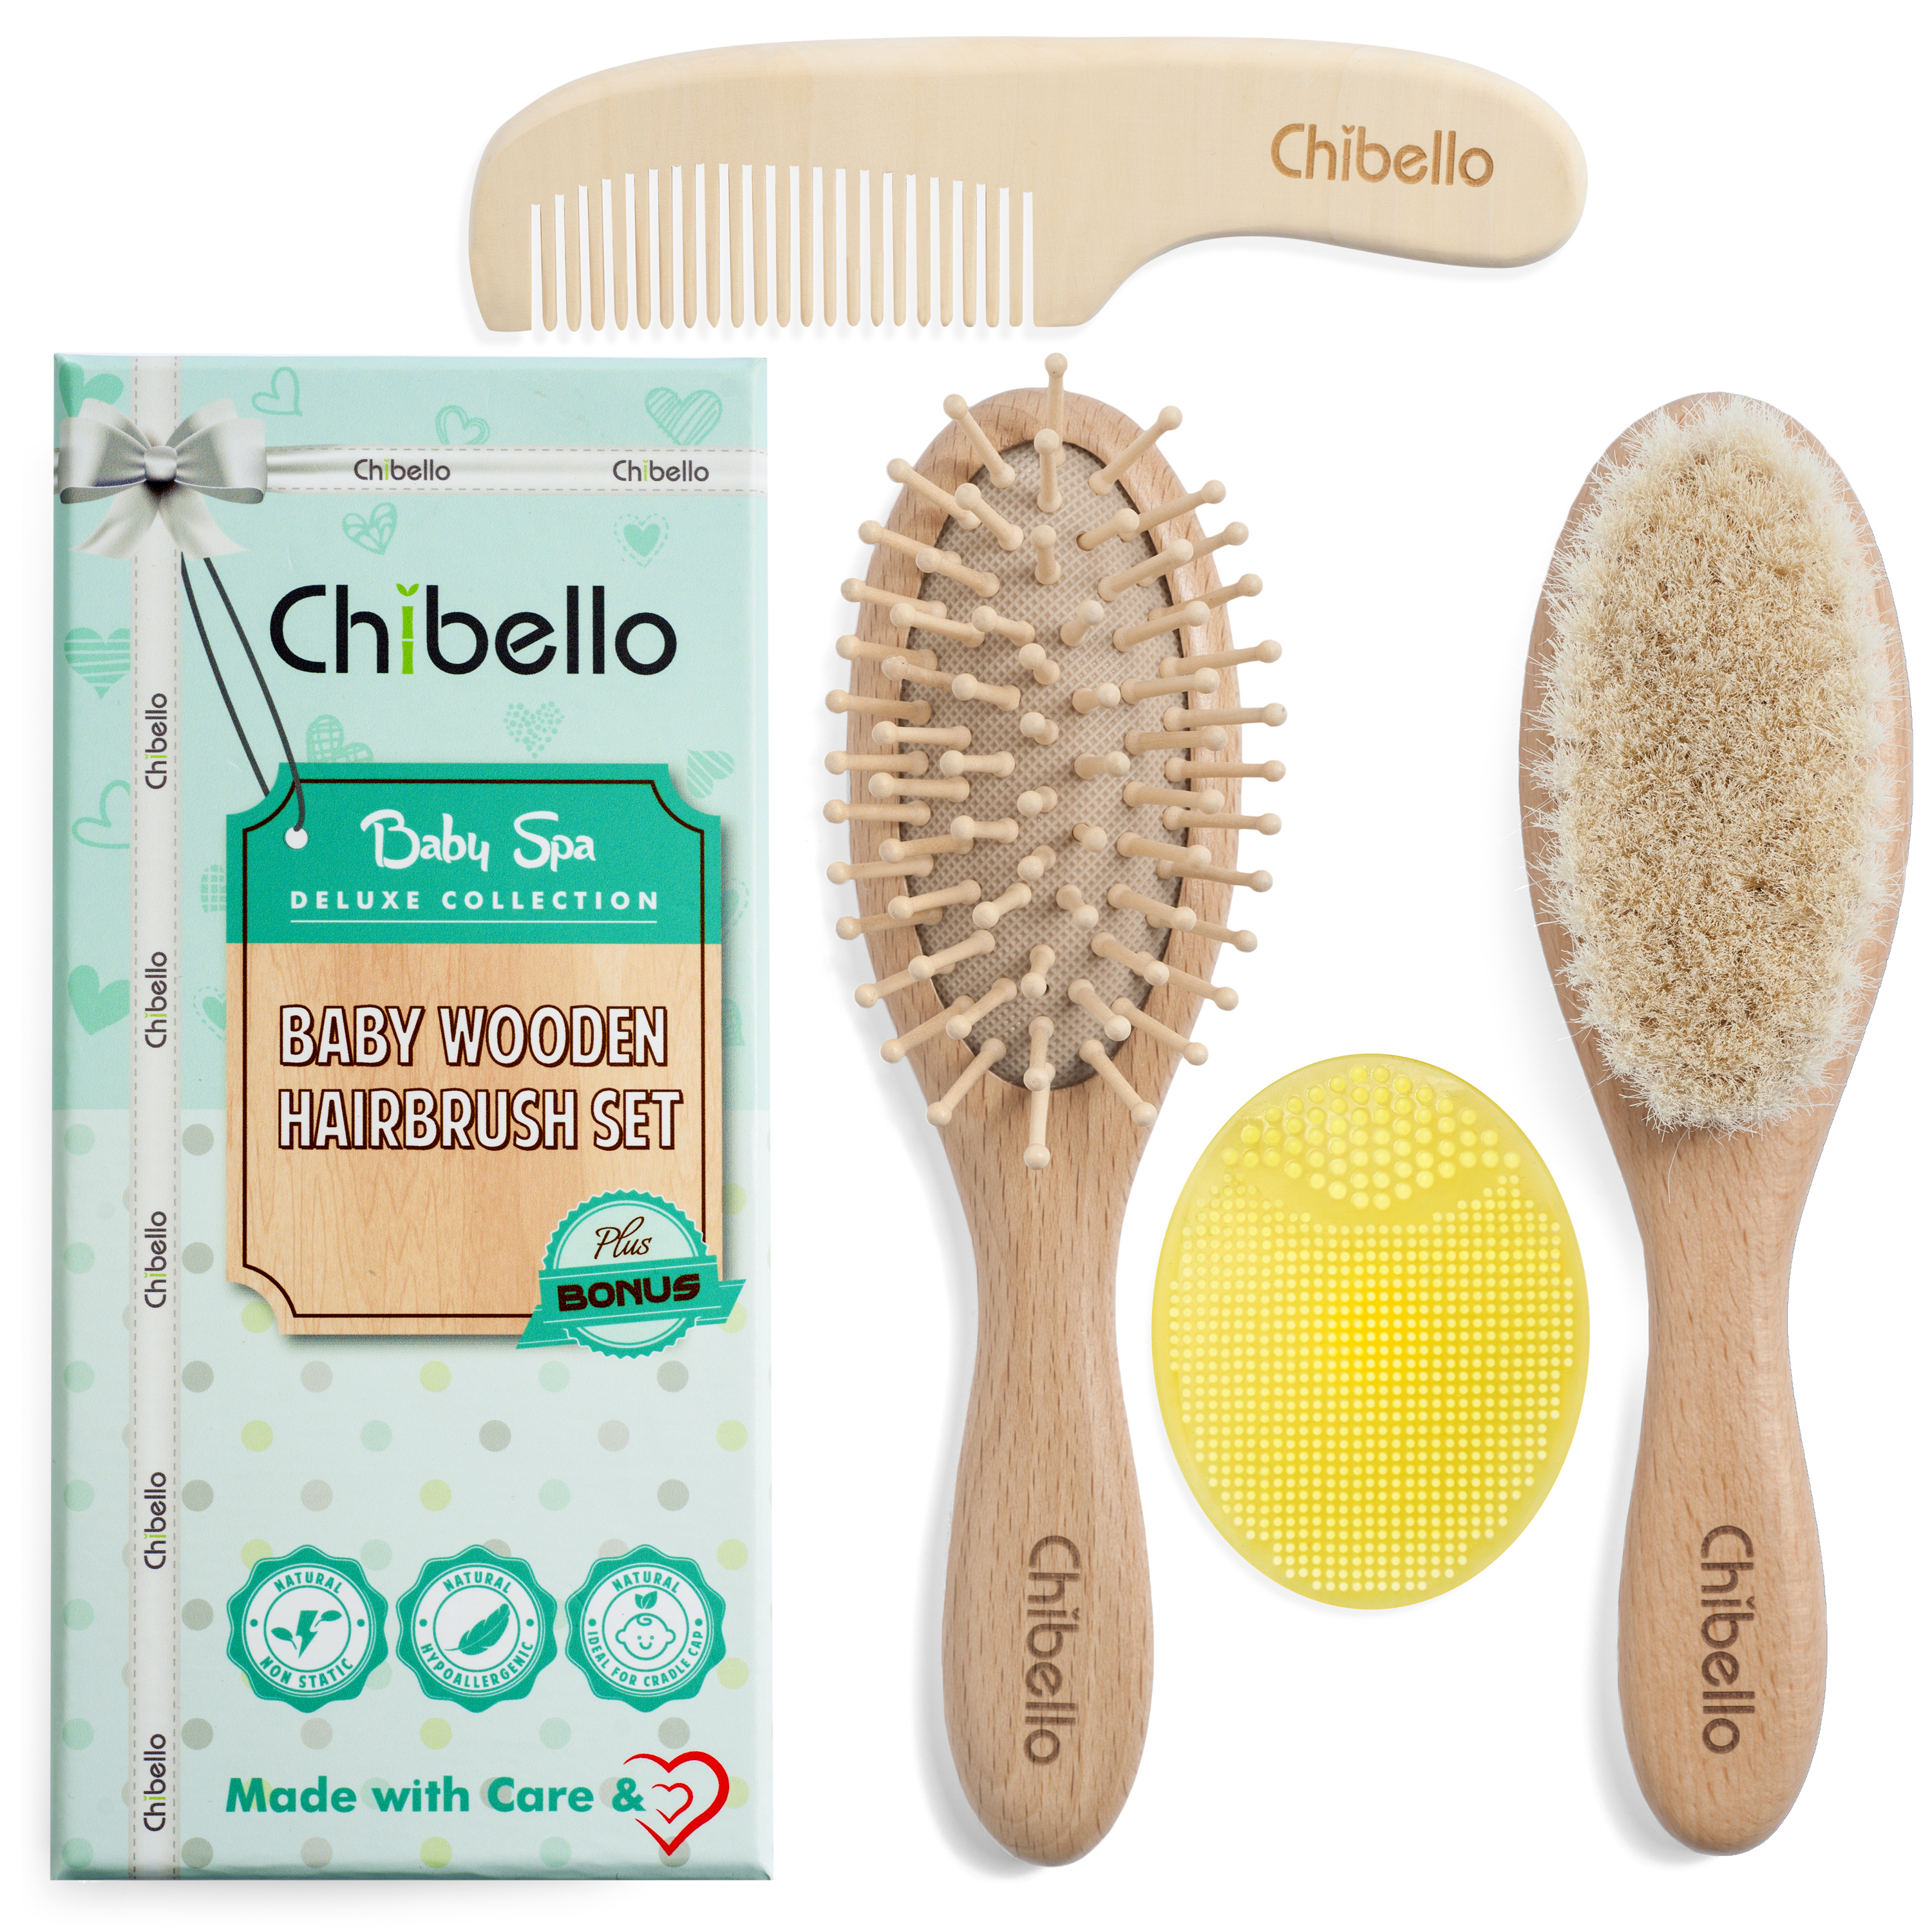 Chibello 4 Piece Wooden Baby Hair Brush And Comb Set regarding 3 Piece Wash, Brush, Comb Wall Decor Sets (Set Of 3) (Image 11 of 30)